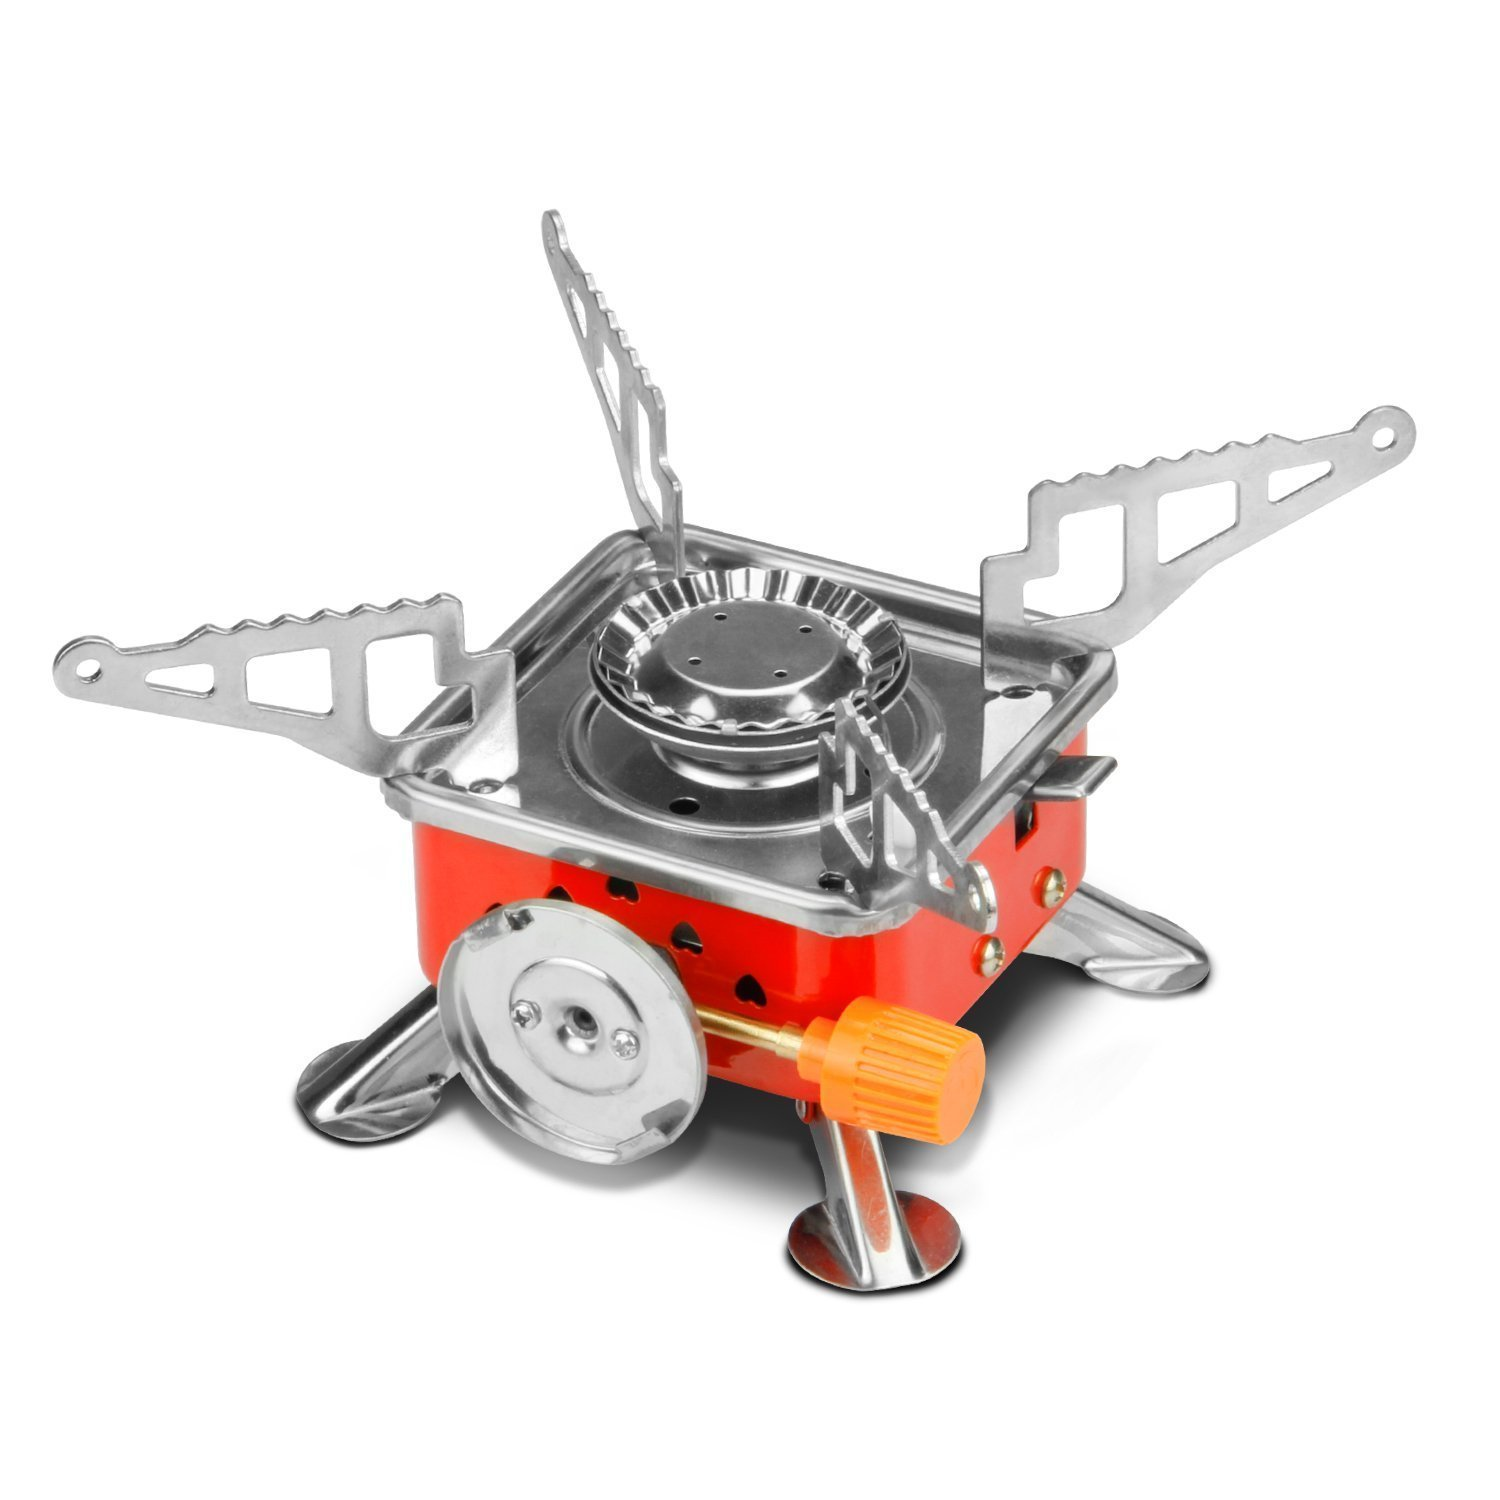 Leeko Camping Stove, Collapsible Portable Outdoor Camping Gear, Gas Camping Stove Burner with Electronic Ignition and Black Case for Camping, Hiking, Hunting Outdoor Activities